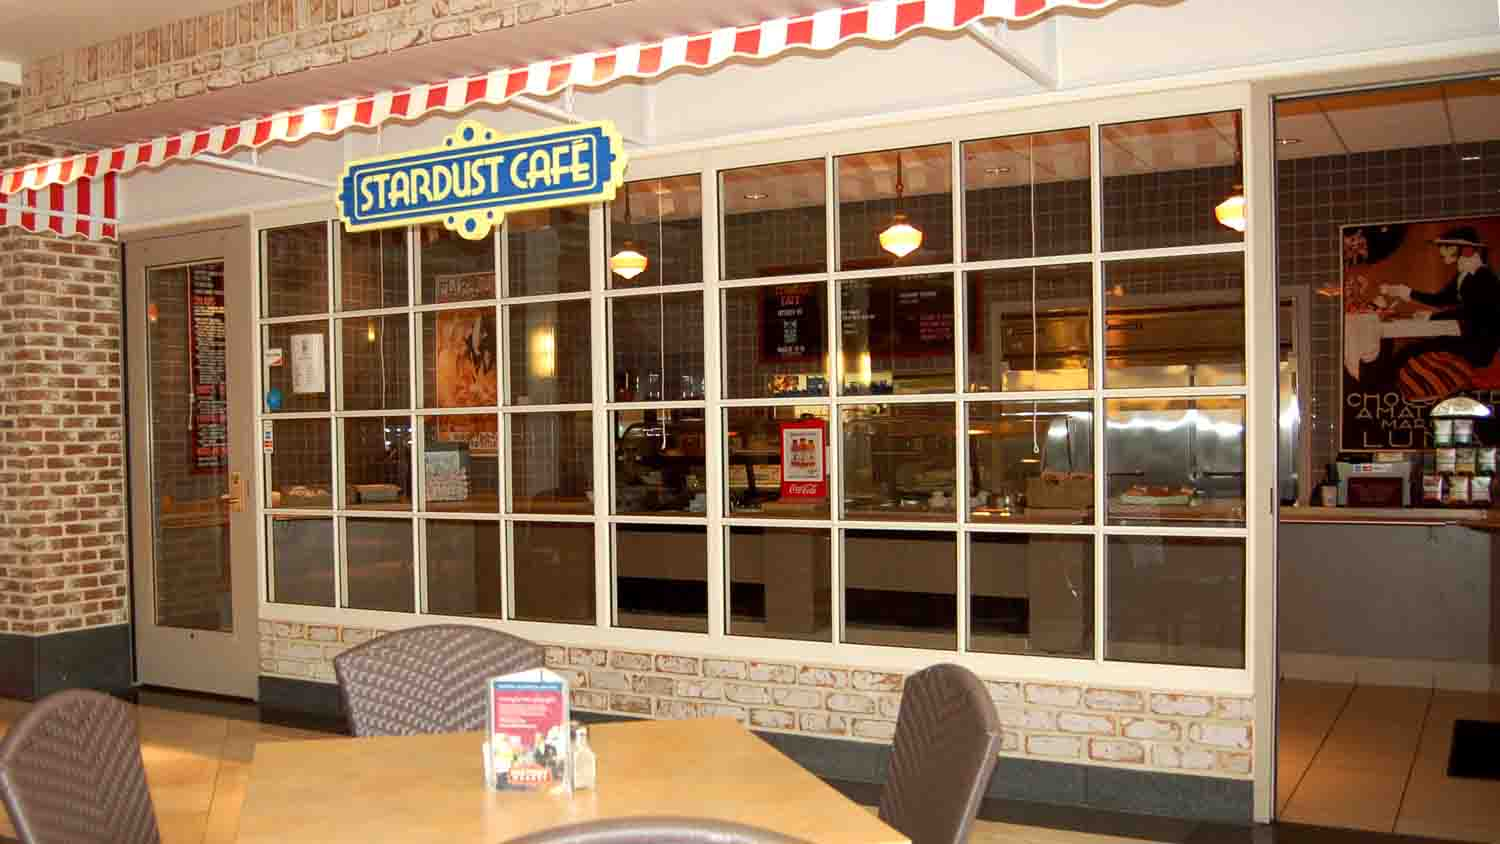 Stardust terrace cafe 1